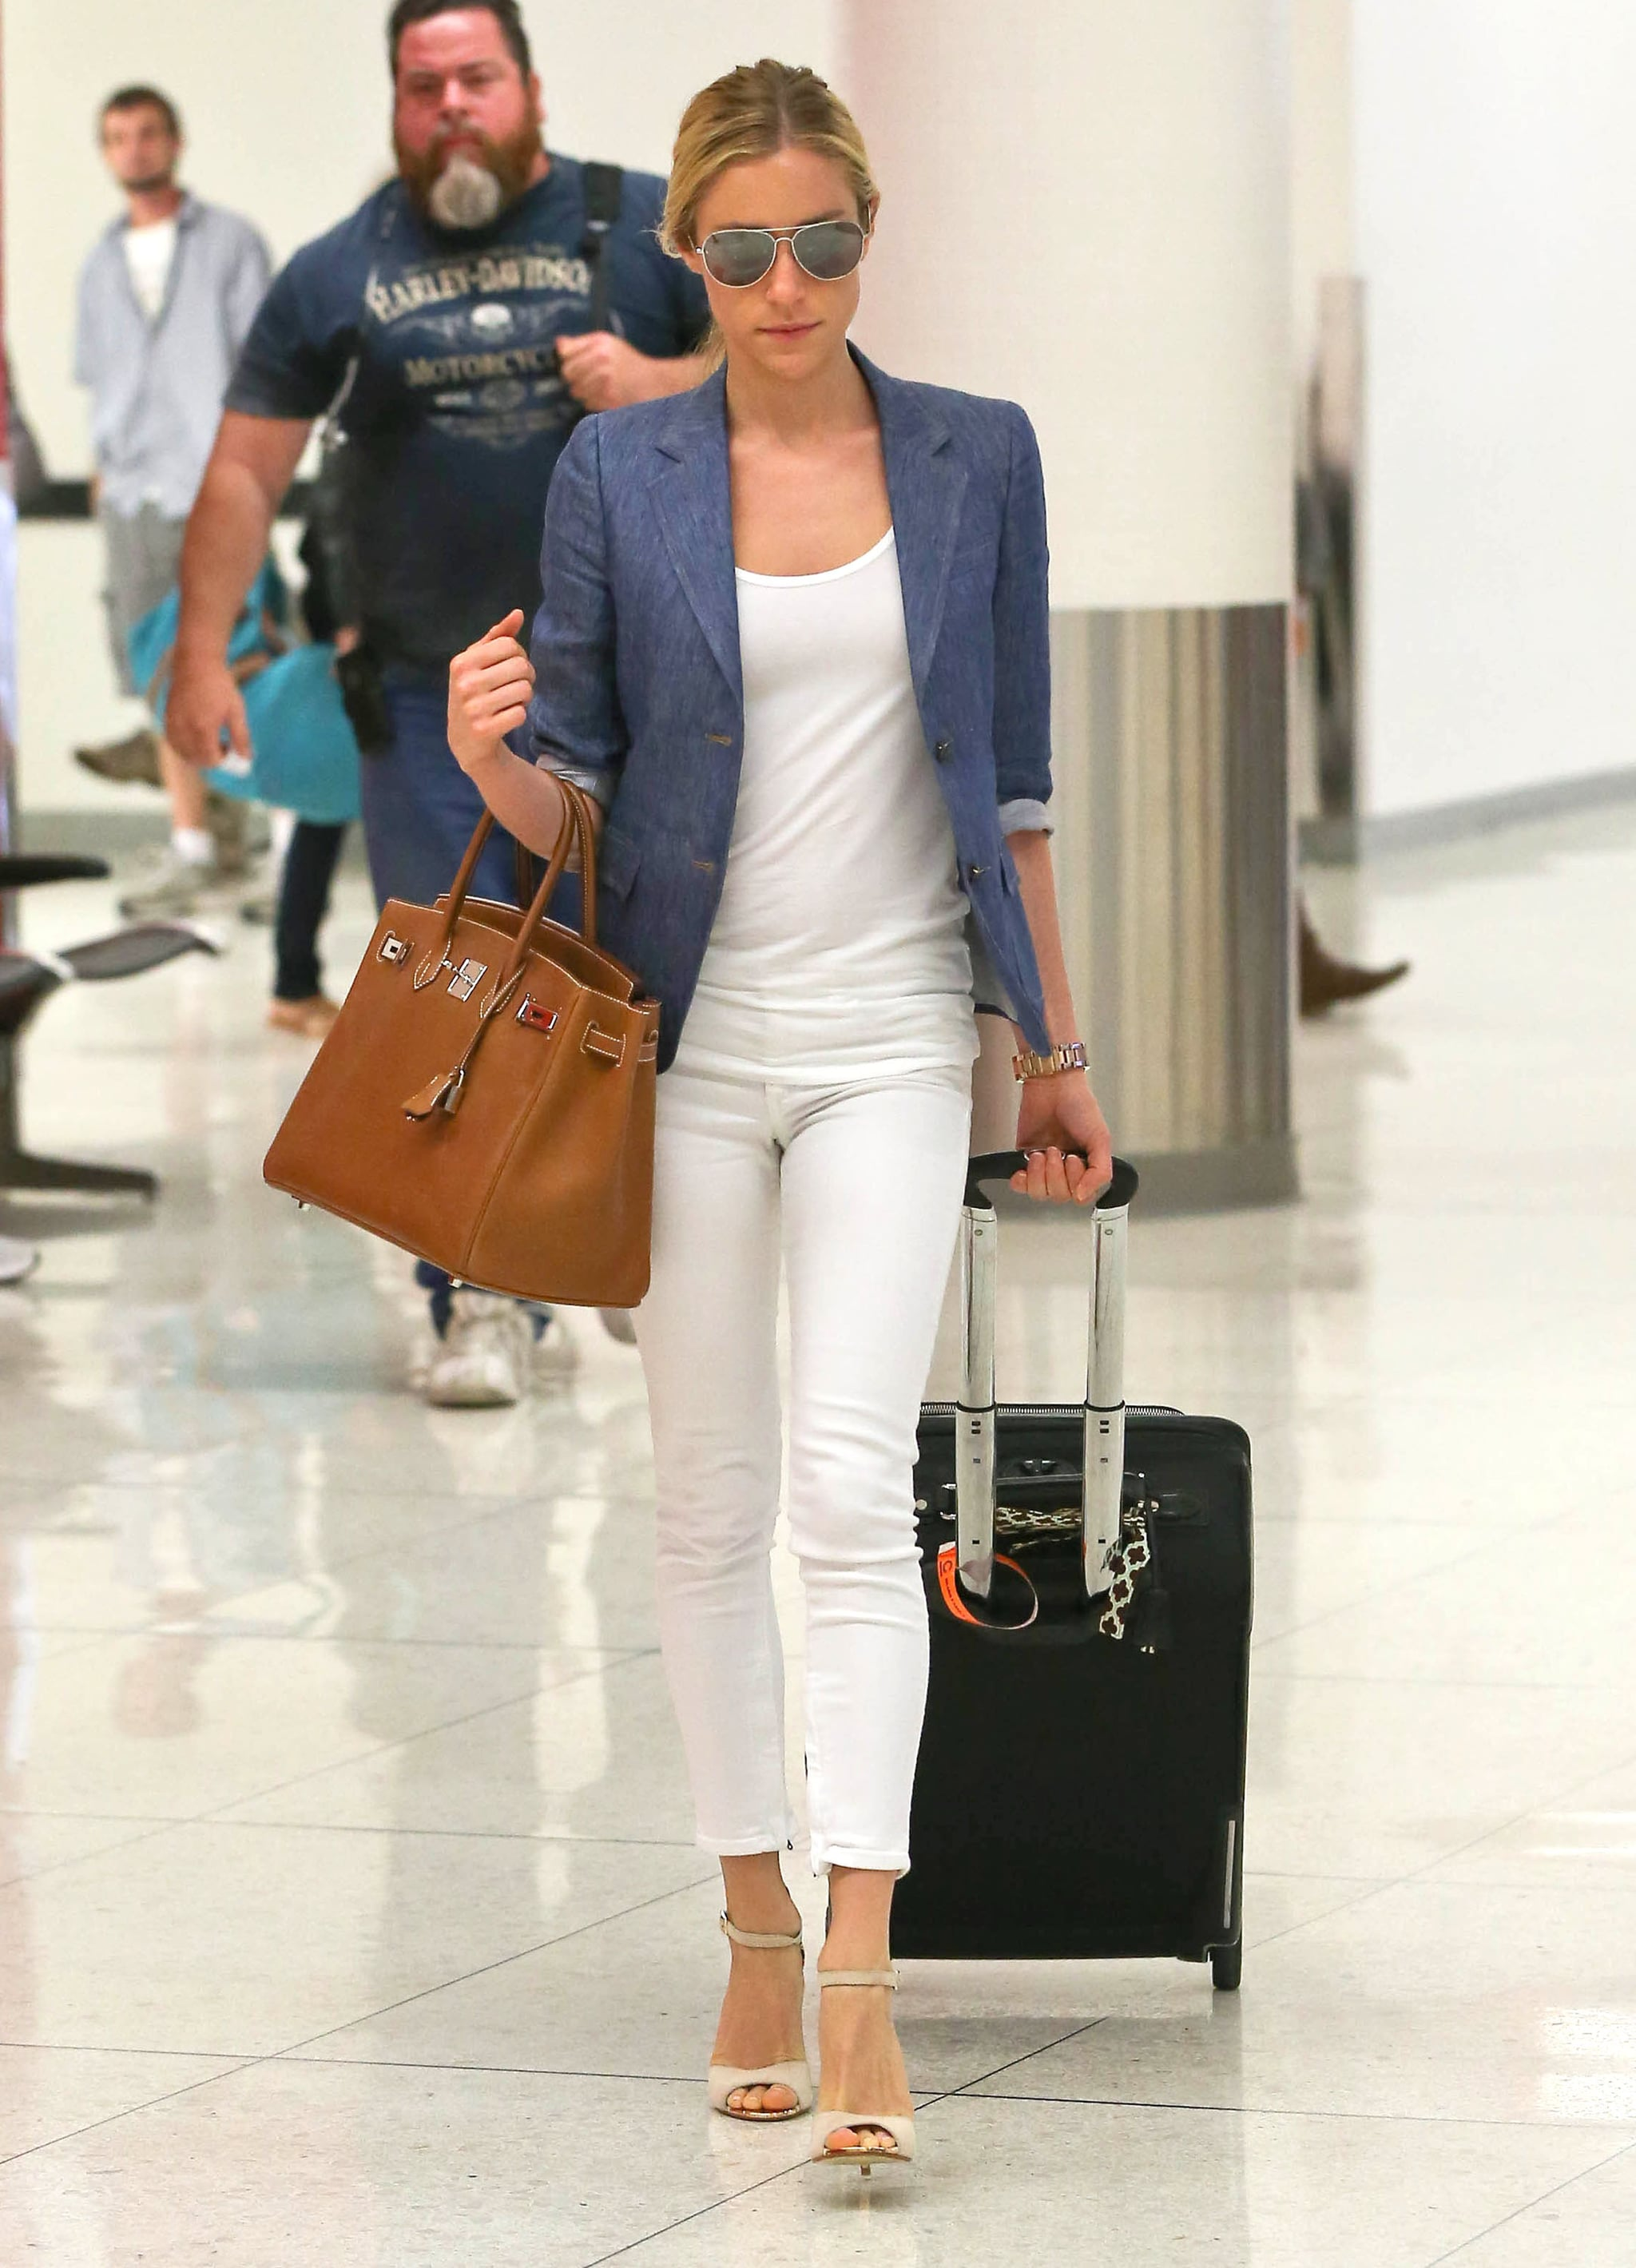 Kristin Cavallari's denim blazer is a quick way to add polish to your Summer style, and it's a bit more dressed up than a regular denim jacket.